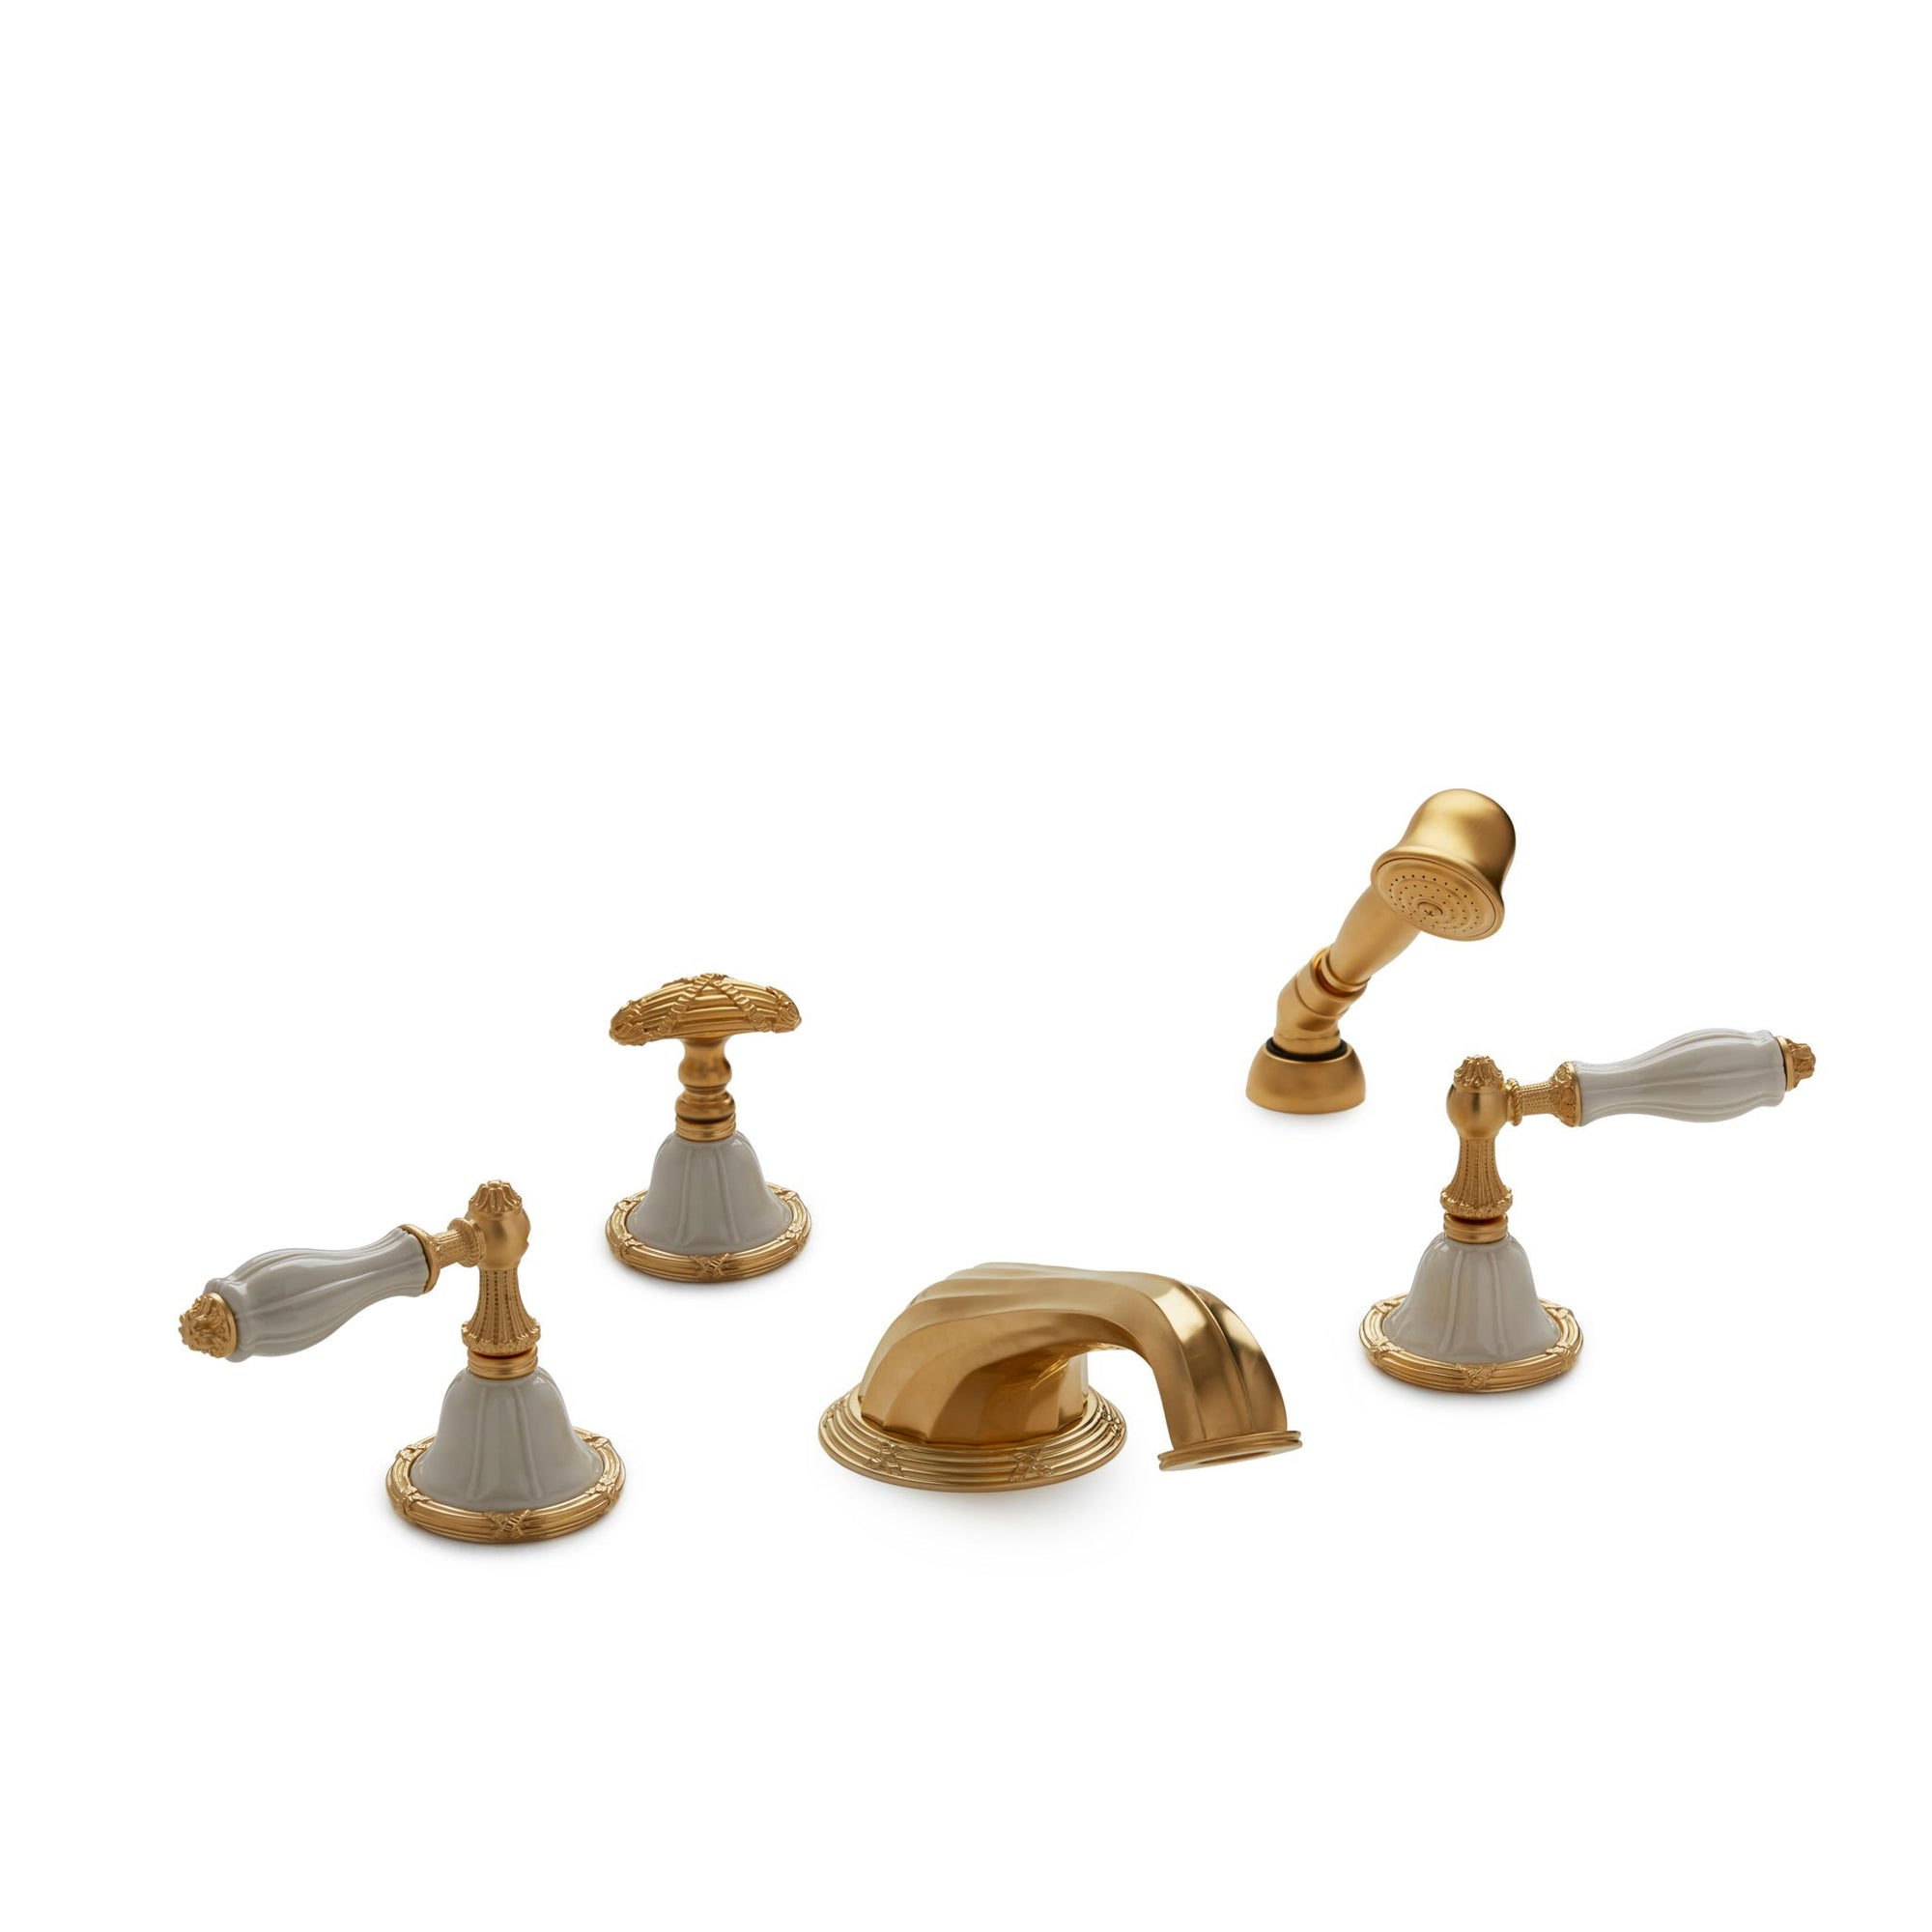 0914DTS818-03SD-GP Sherle Wagner International Scalloped Ceramic Empire Lever Deck Mount Tub Set with Hand Shower in Gold Plate metal finish with Sand Glaze inserts